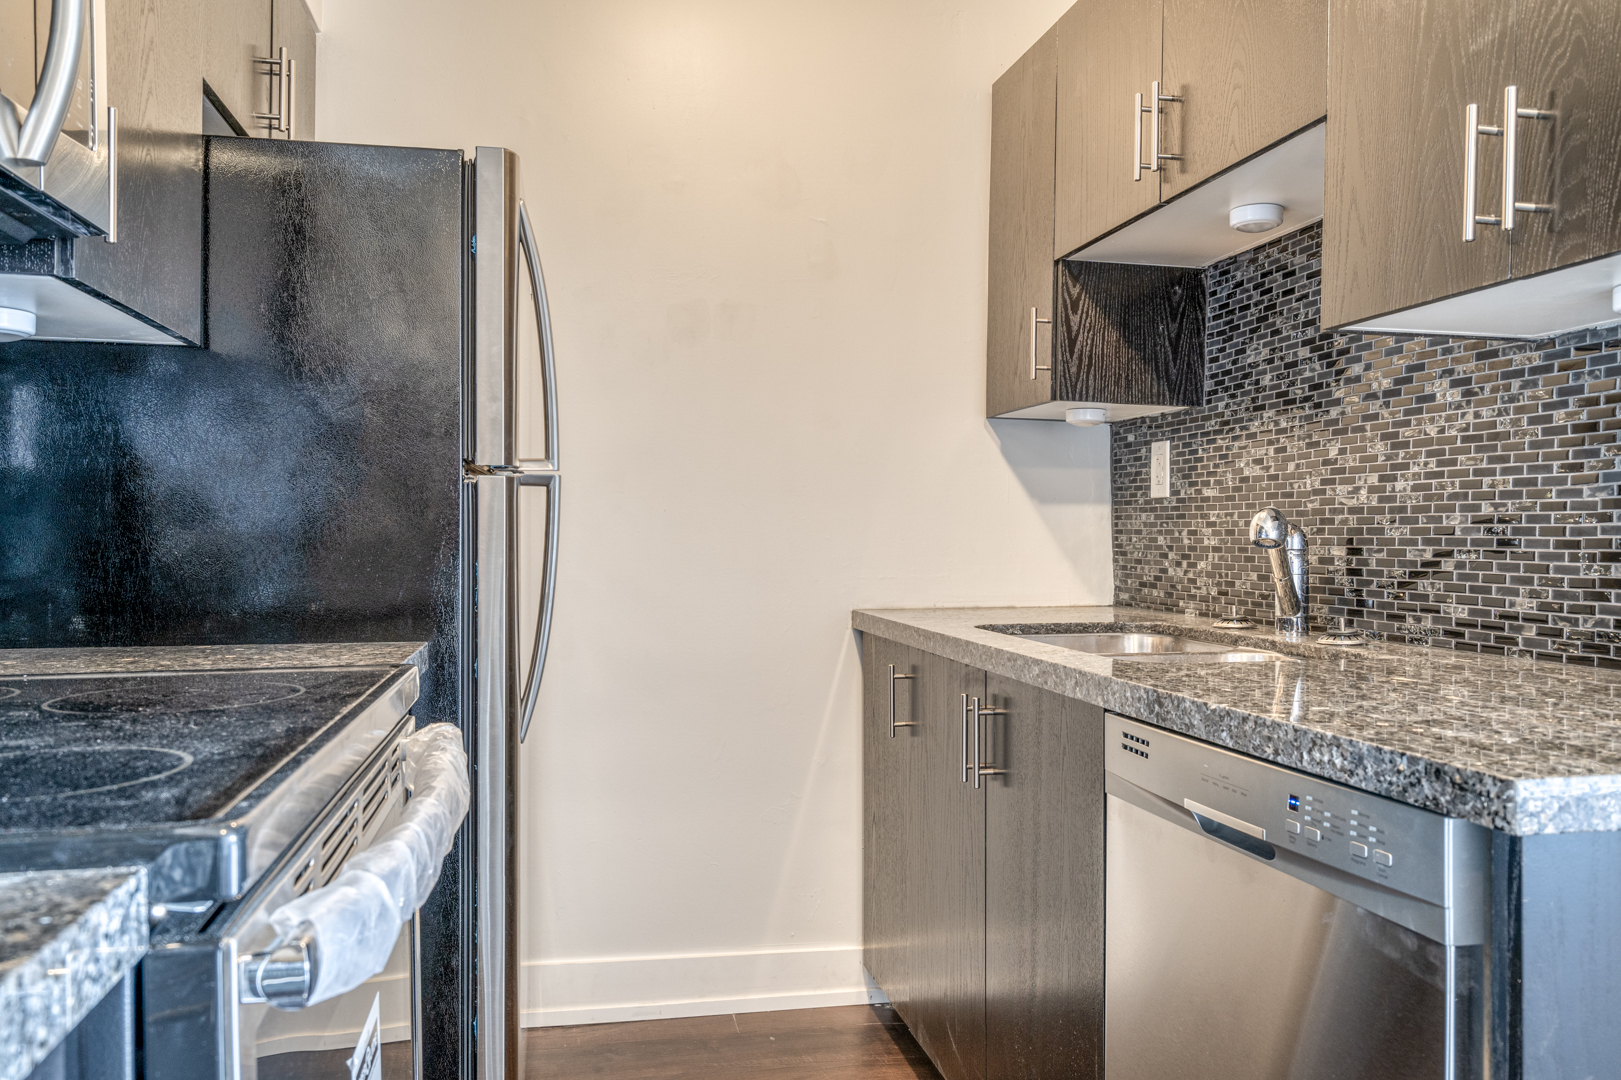 1 bedroom unit #607 – $1,275.00 April 1st, 2021 (luxuriously renovated)